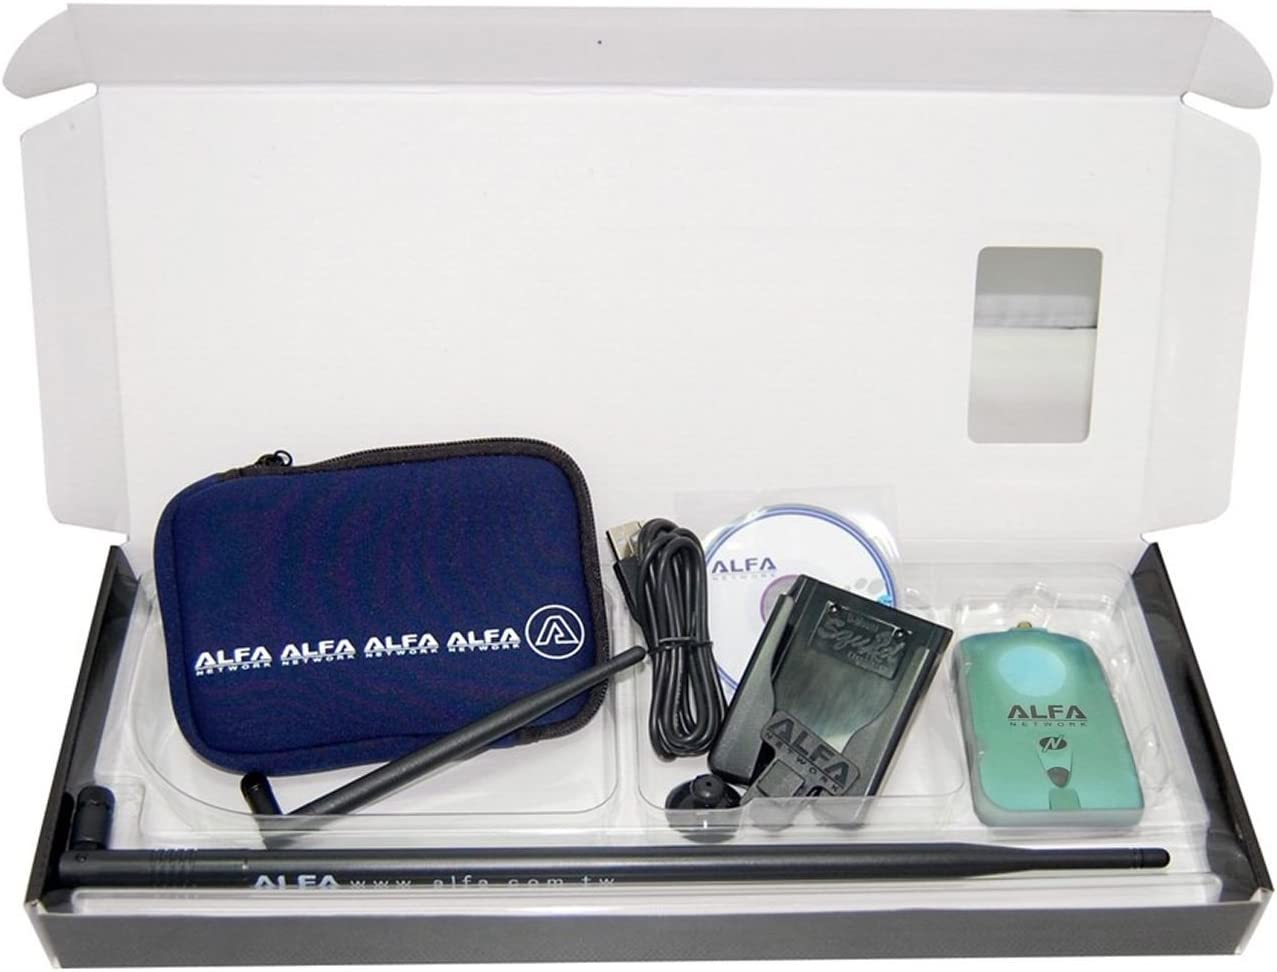 Alfa Network NH-Luxury - Kit Adaptador WiFi USB, AWUS036NH + Antena de 9 dBi + U-Bag + U-Mount-CS